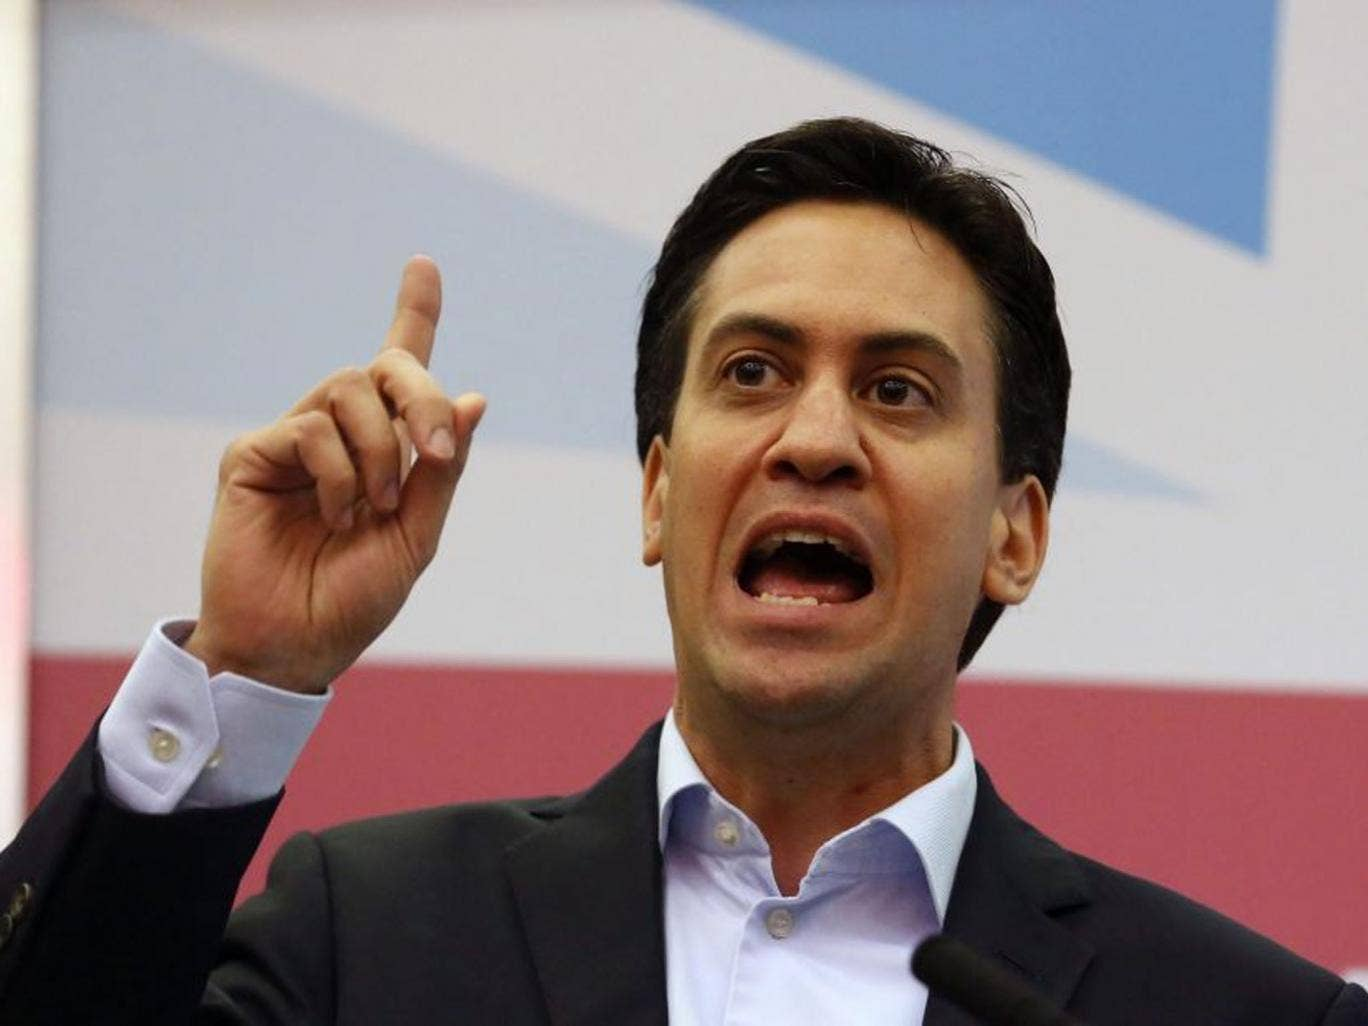 Labour leader Ed Miliband said his government would force companies that hire workers from outside the EU to take on the same number of UK apprentices